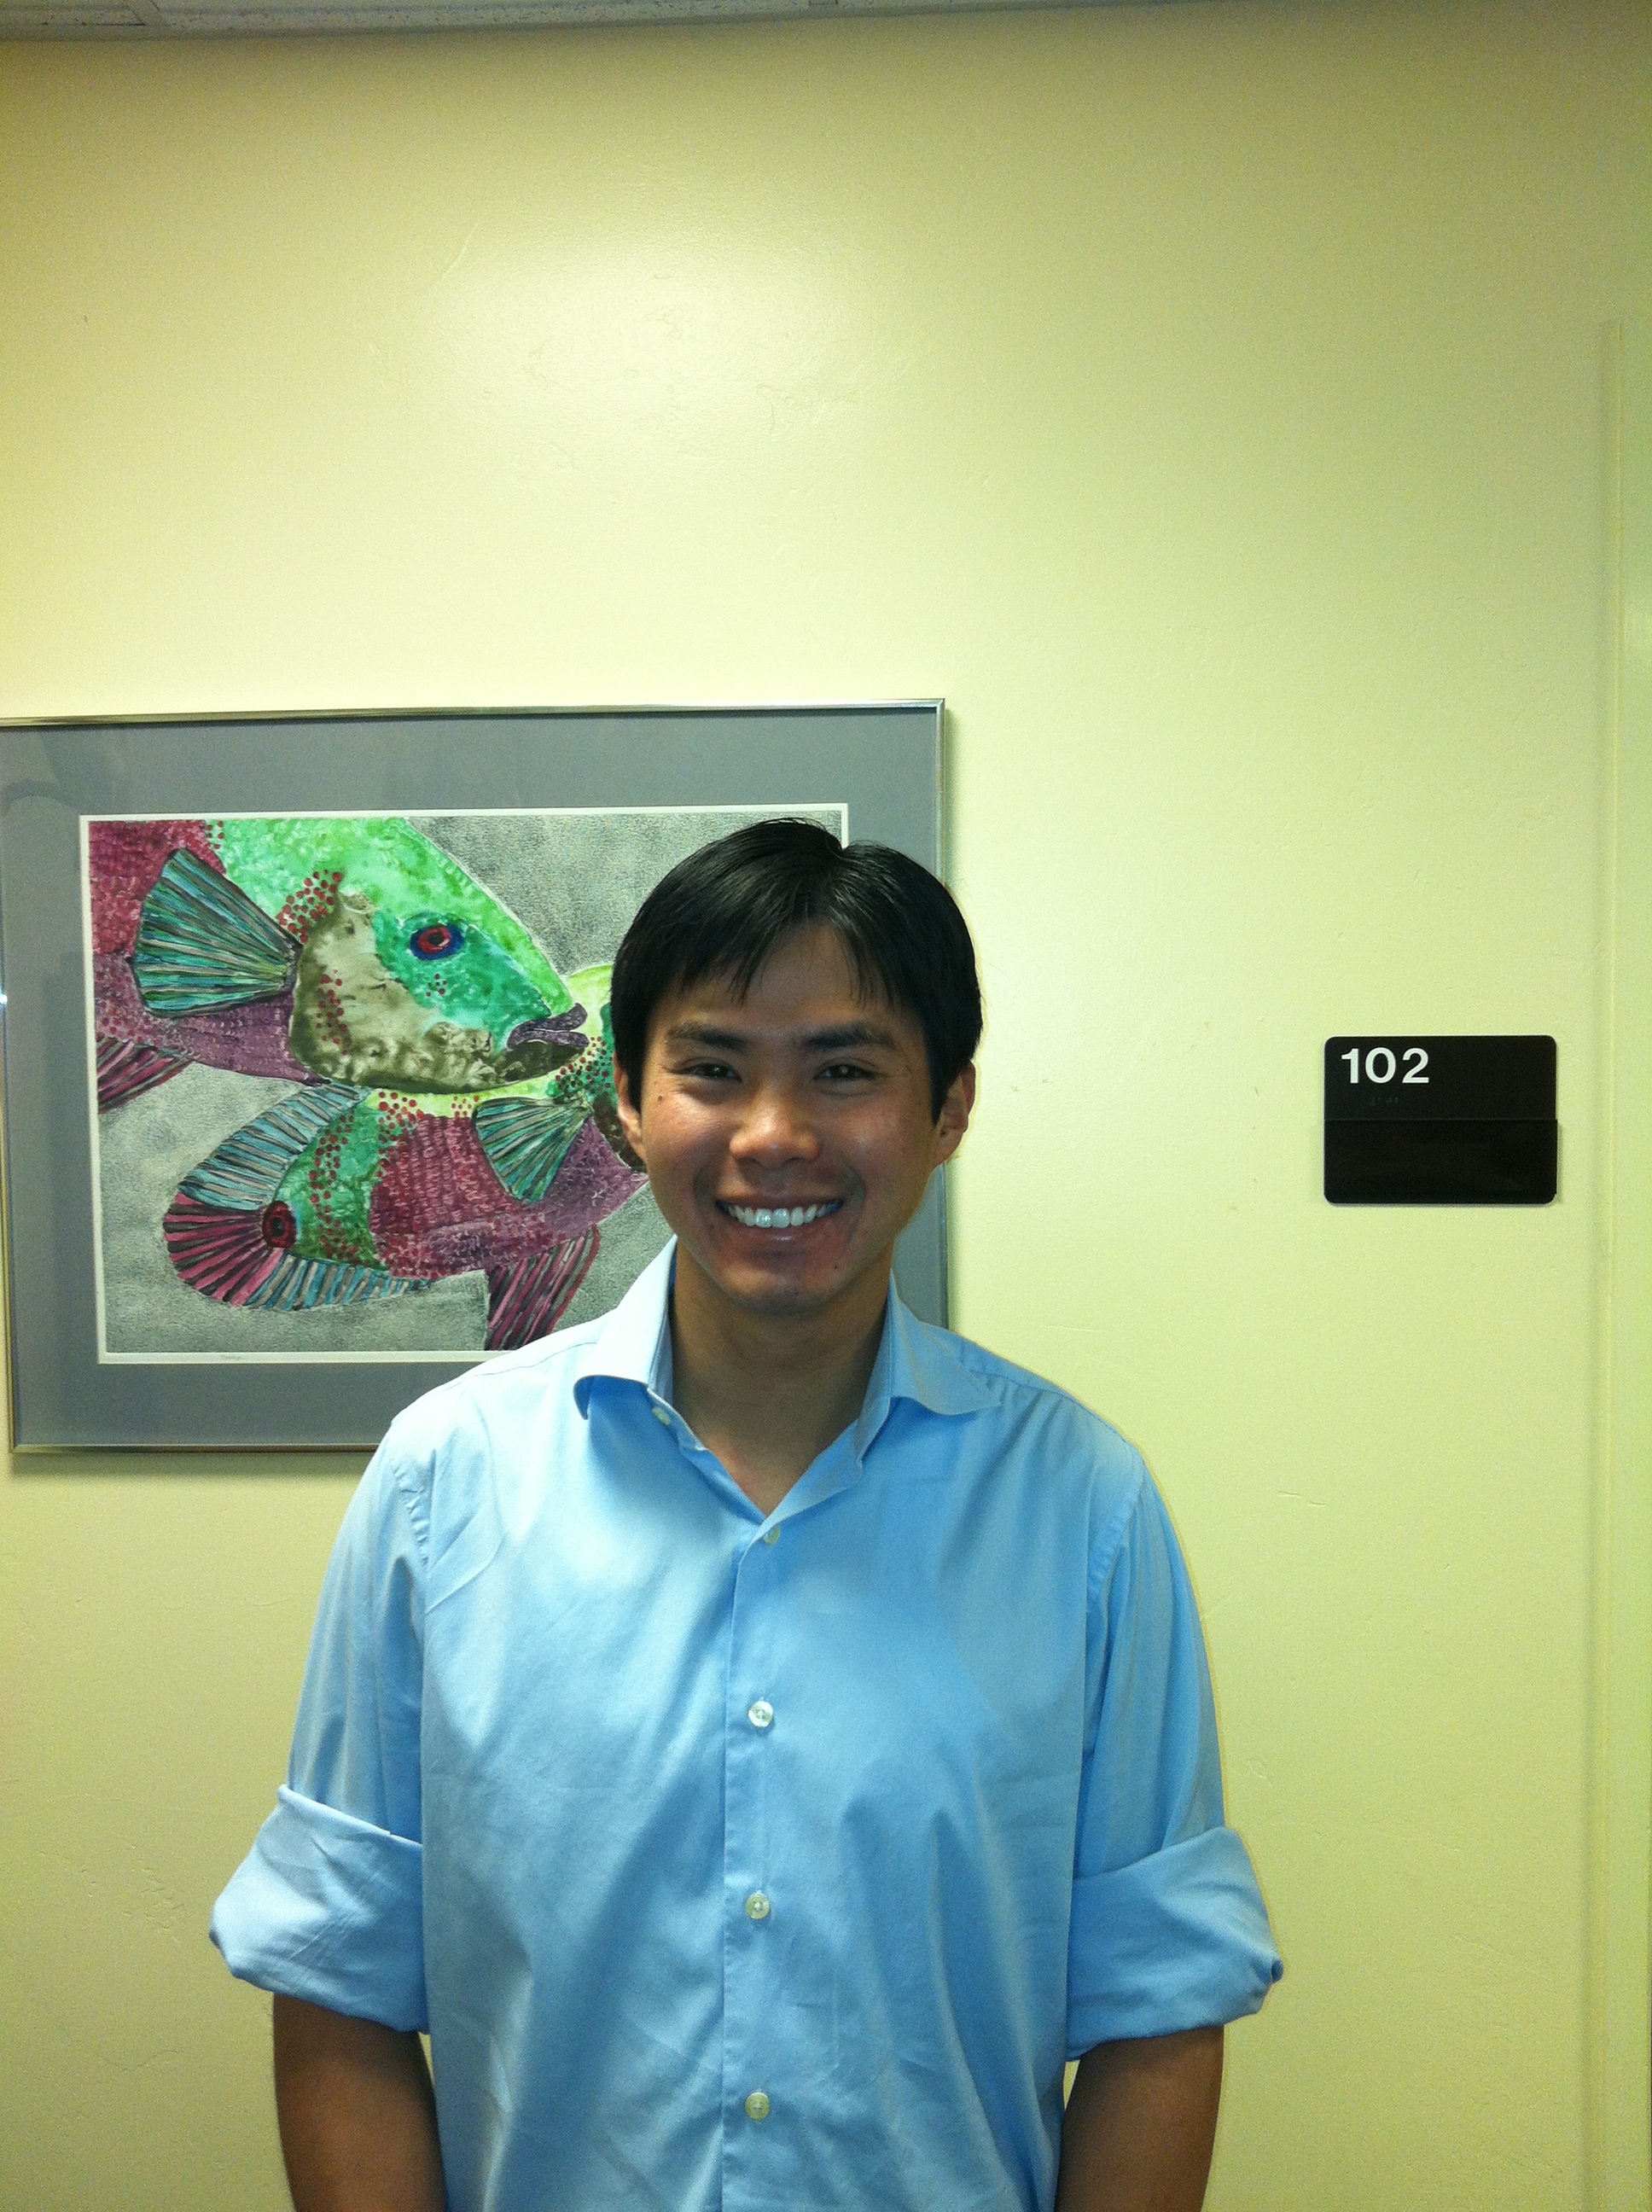 Anthony Shiao earned his J.D. at the Lewis and Clark Law School and a Master of Advanced Study in Ocean Biodiversity and Conservation from Scripps Institution of Oceanography.